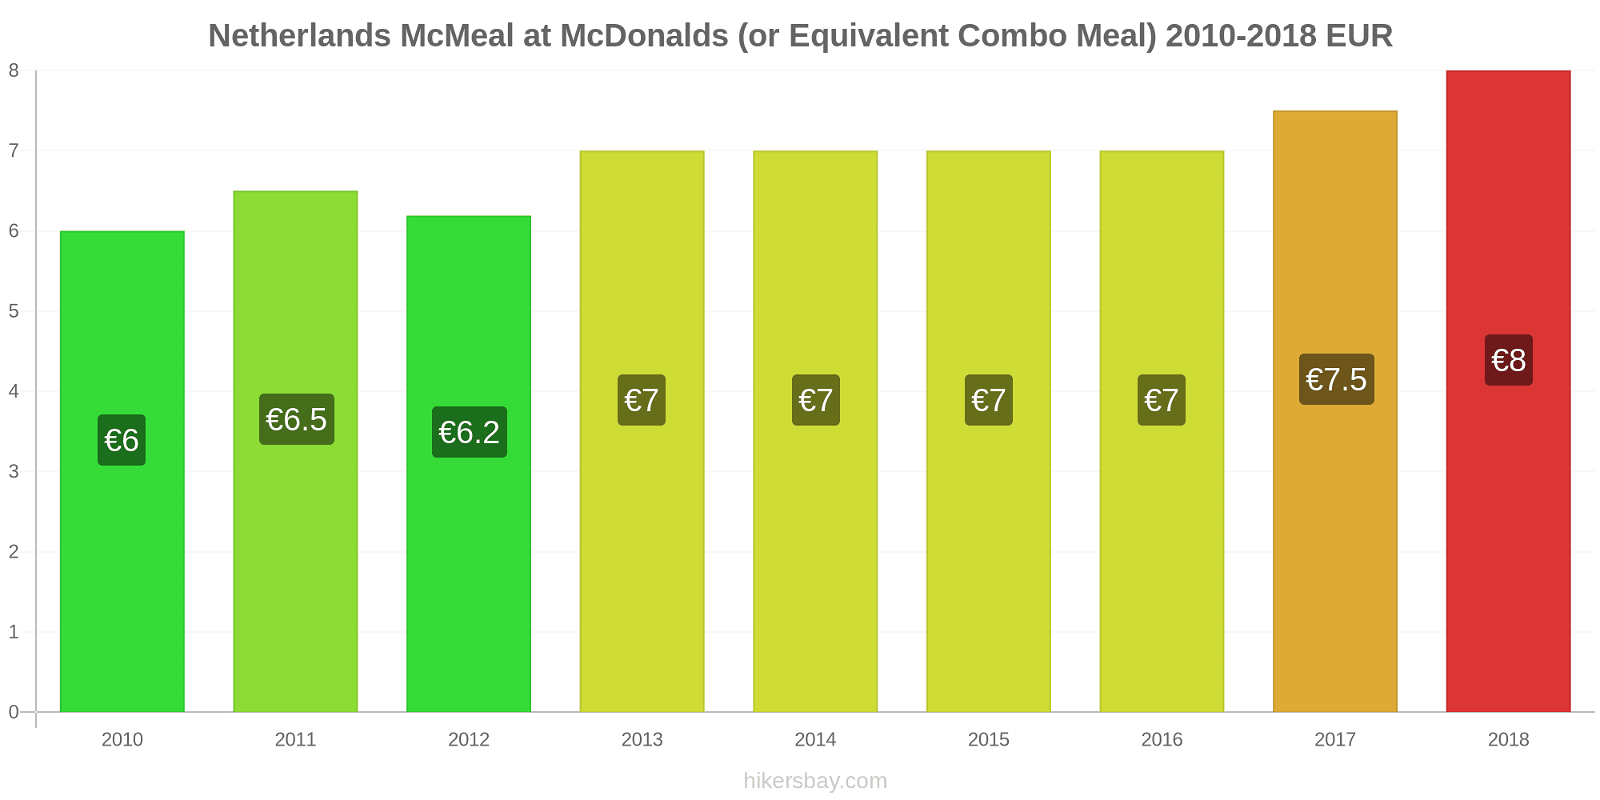 Netherlands price changes McMeal at McDonalds (or Equivalent Combo Meal) hikersbay.com